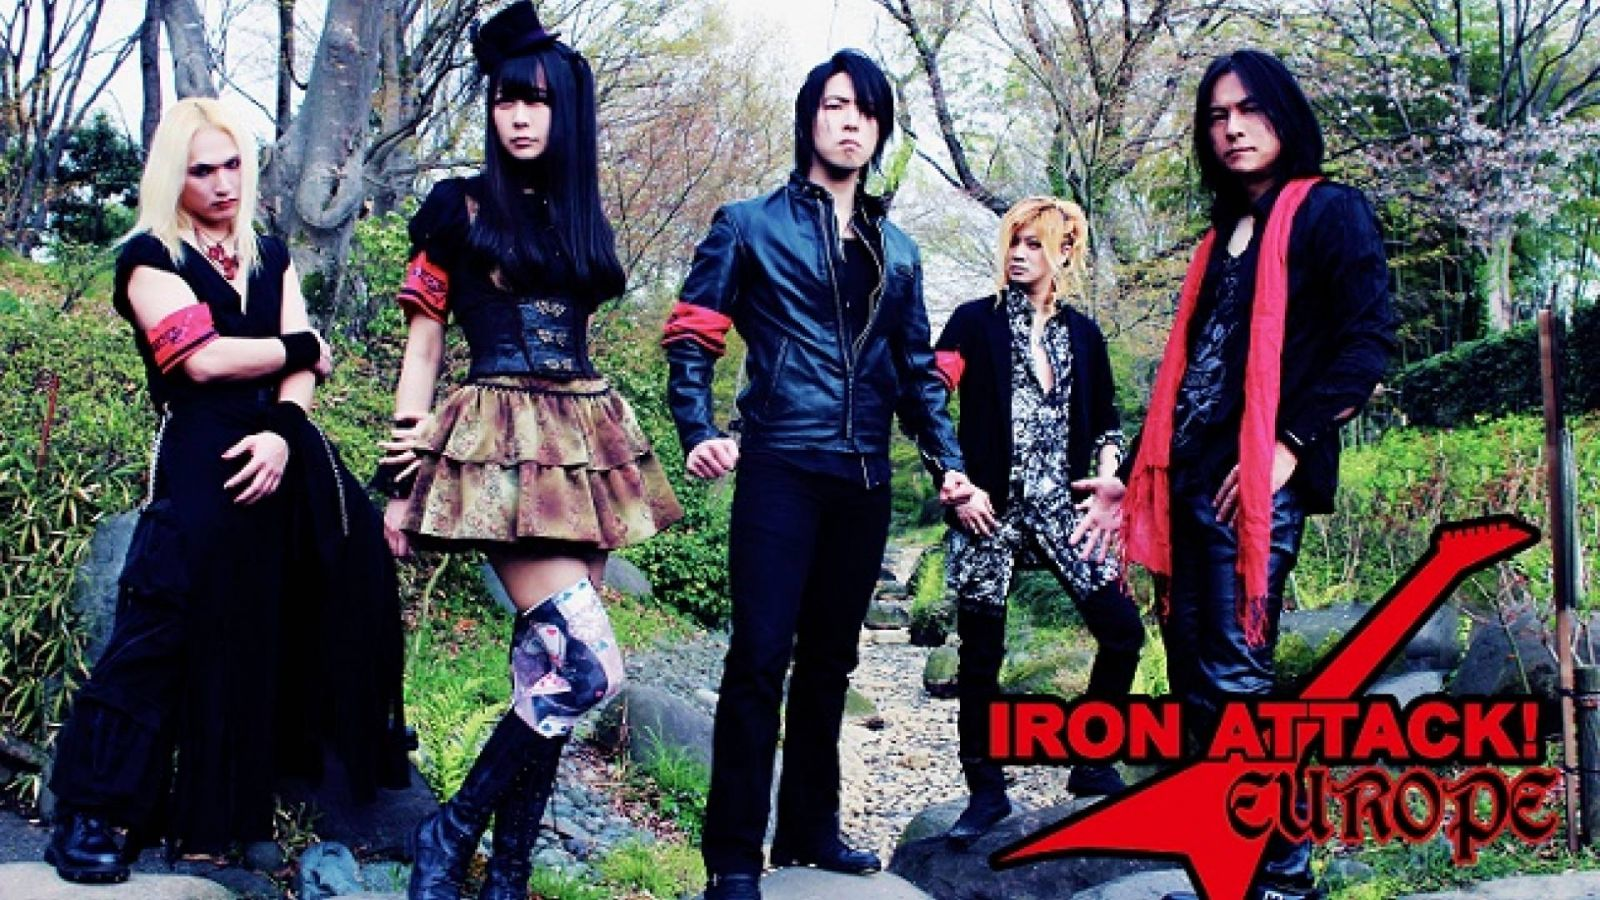 IRON ATTACK! to Appear at Madrid Otaku © 2015 IRON ATTACK!